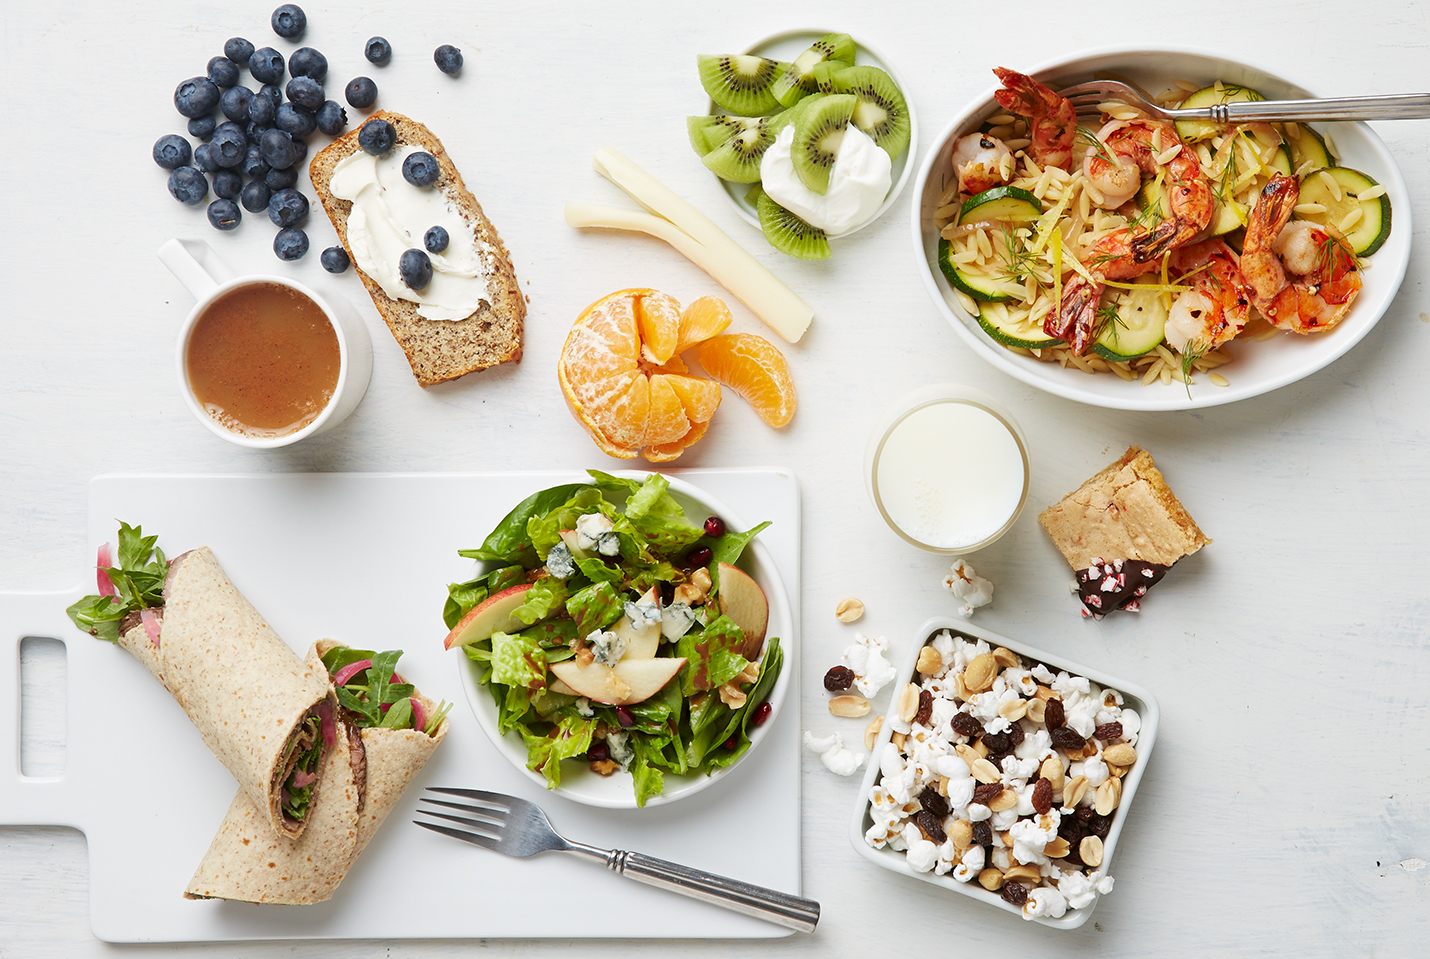 8 Foods That Can Help You Lose Weight Quickly : Nutrition